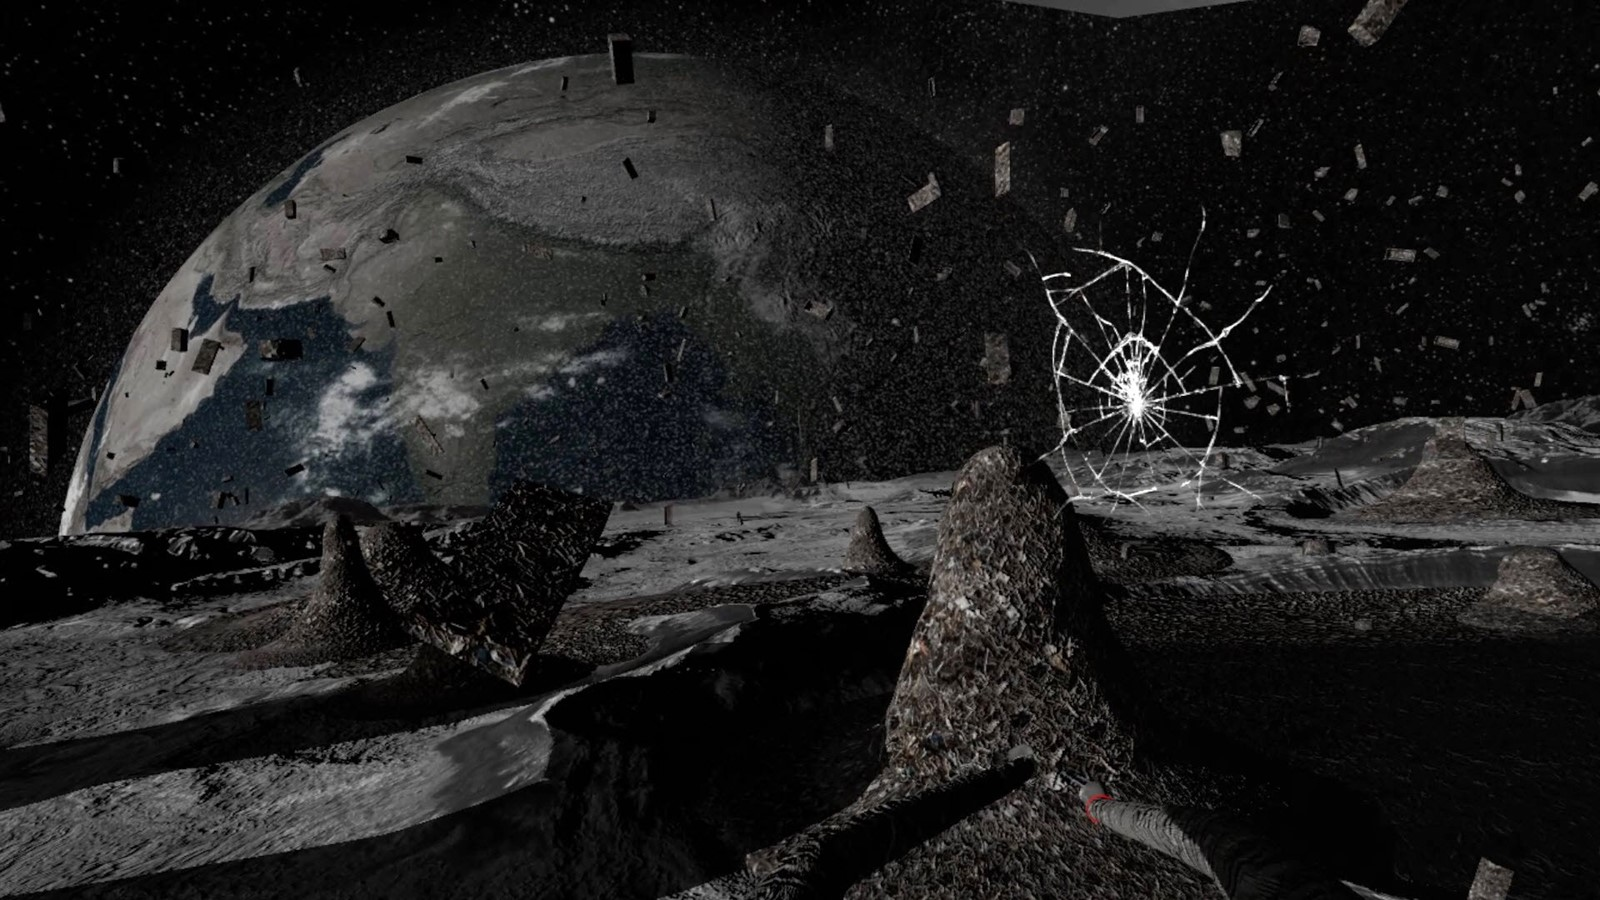 Laurie Anderson and Hsin-Chien Huang's To The Moon